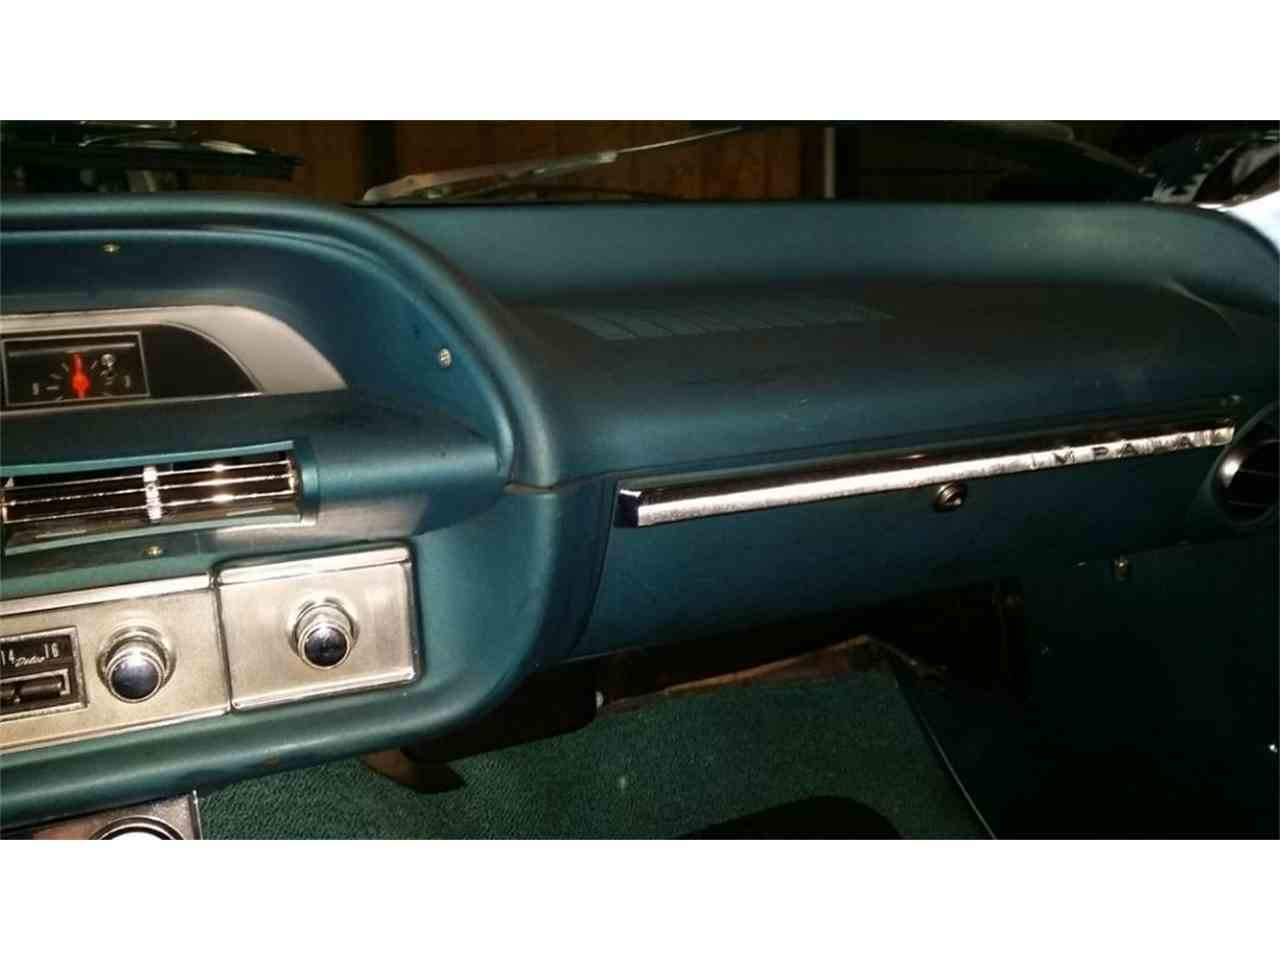 Large Picture of 1964 Chevrolet IMPALA 2 DOOR HARDTOP located in Annandale Minnesota - $21,500.00 - J1JM